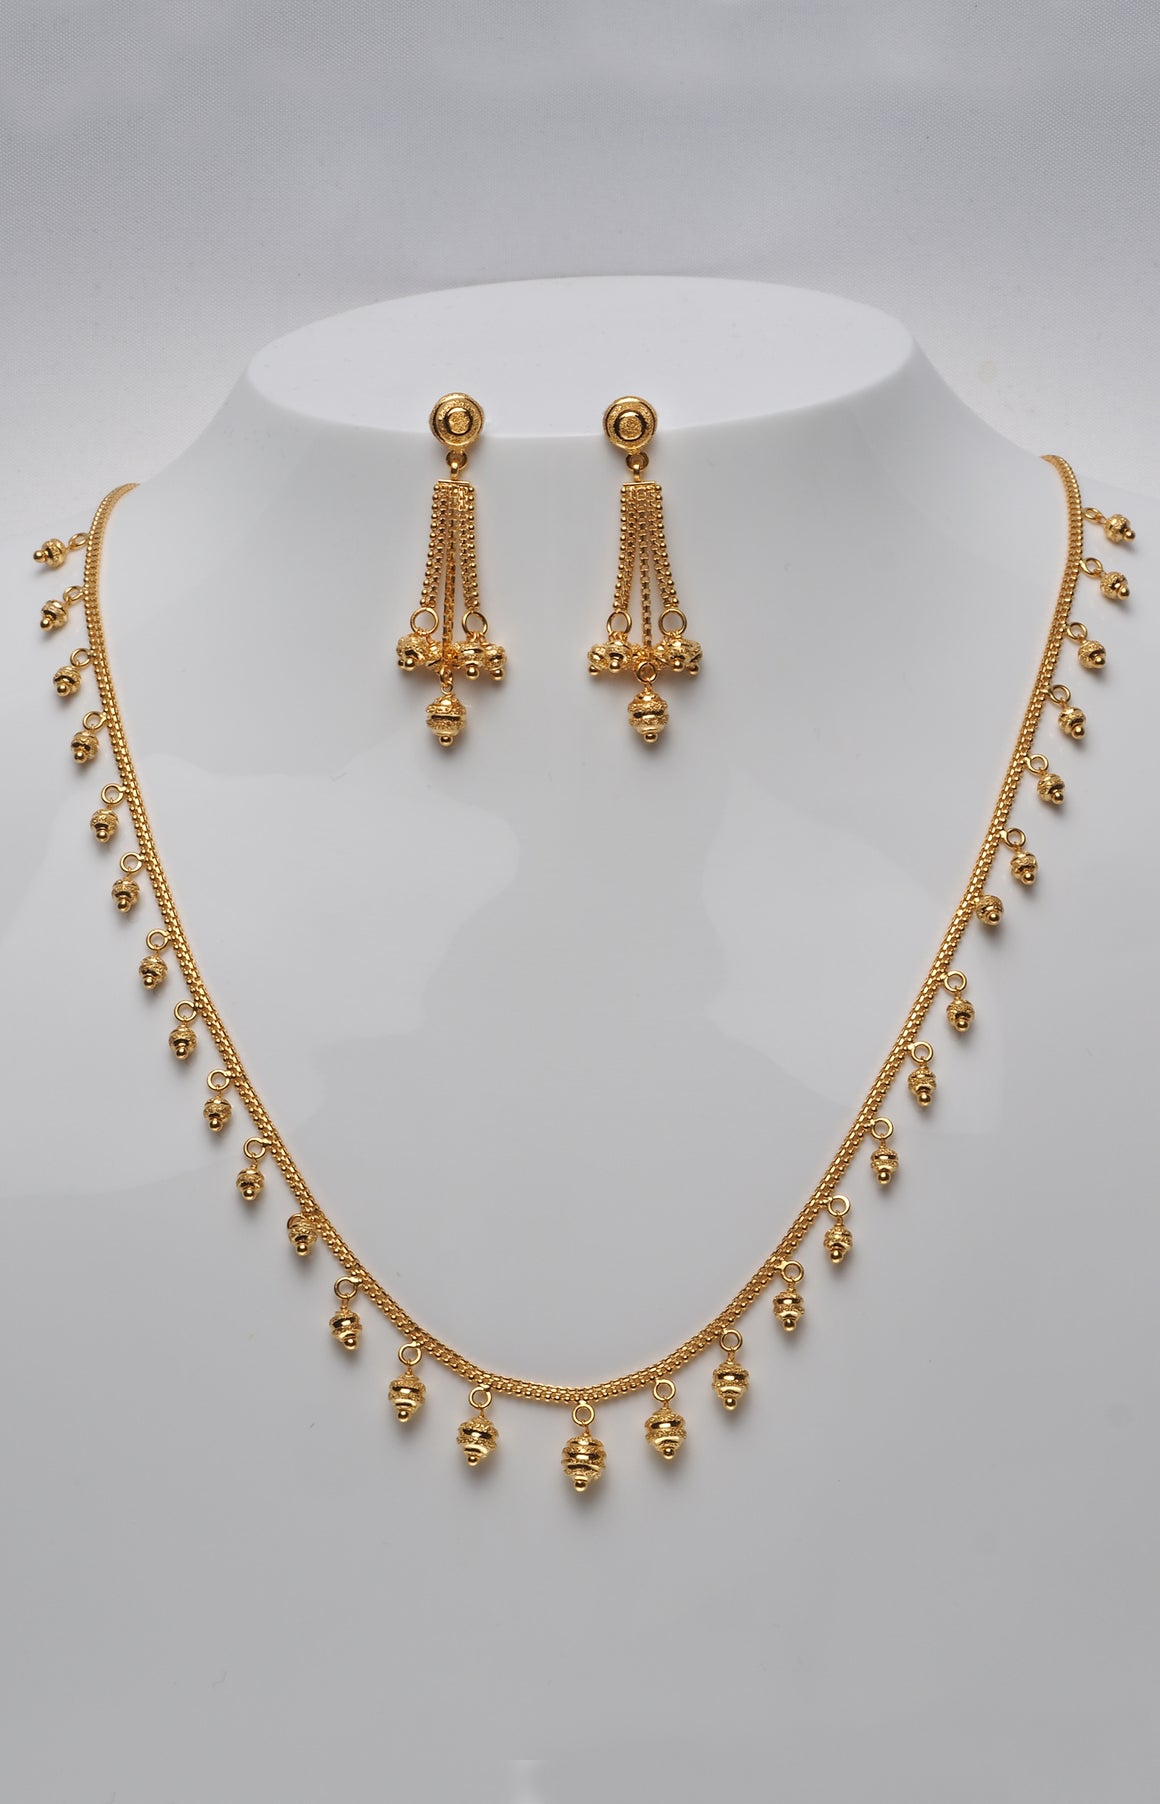 22 Carat Gold Necklace and Earring Set (N&E-6259)